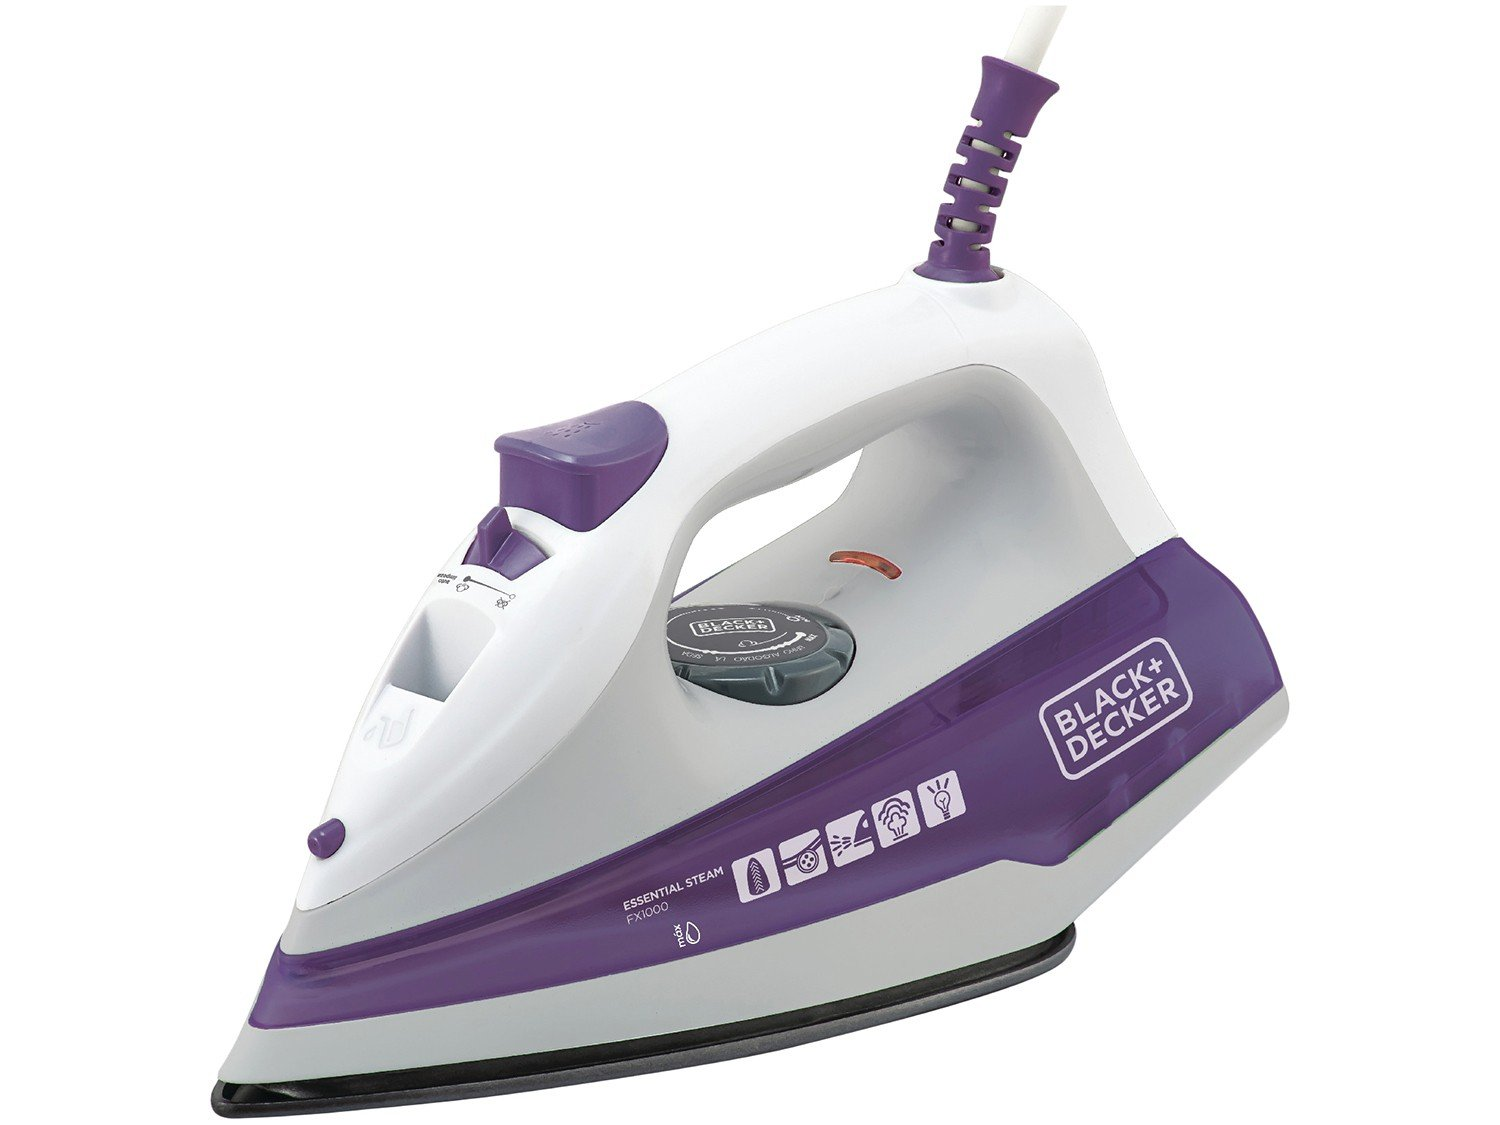 Ferro a Vapor Black+Decker FX100 com Spray – Branco/Roxo - 220V - 4